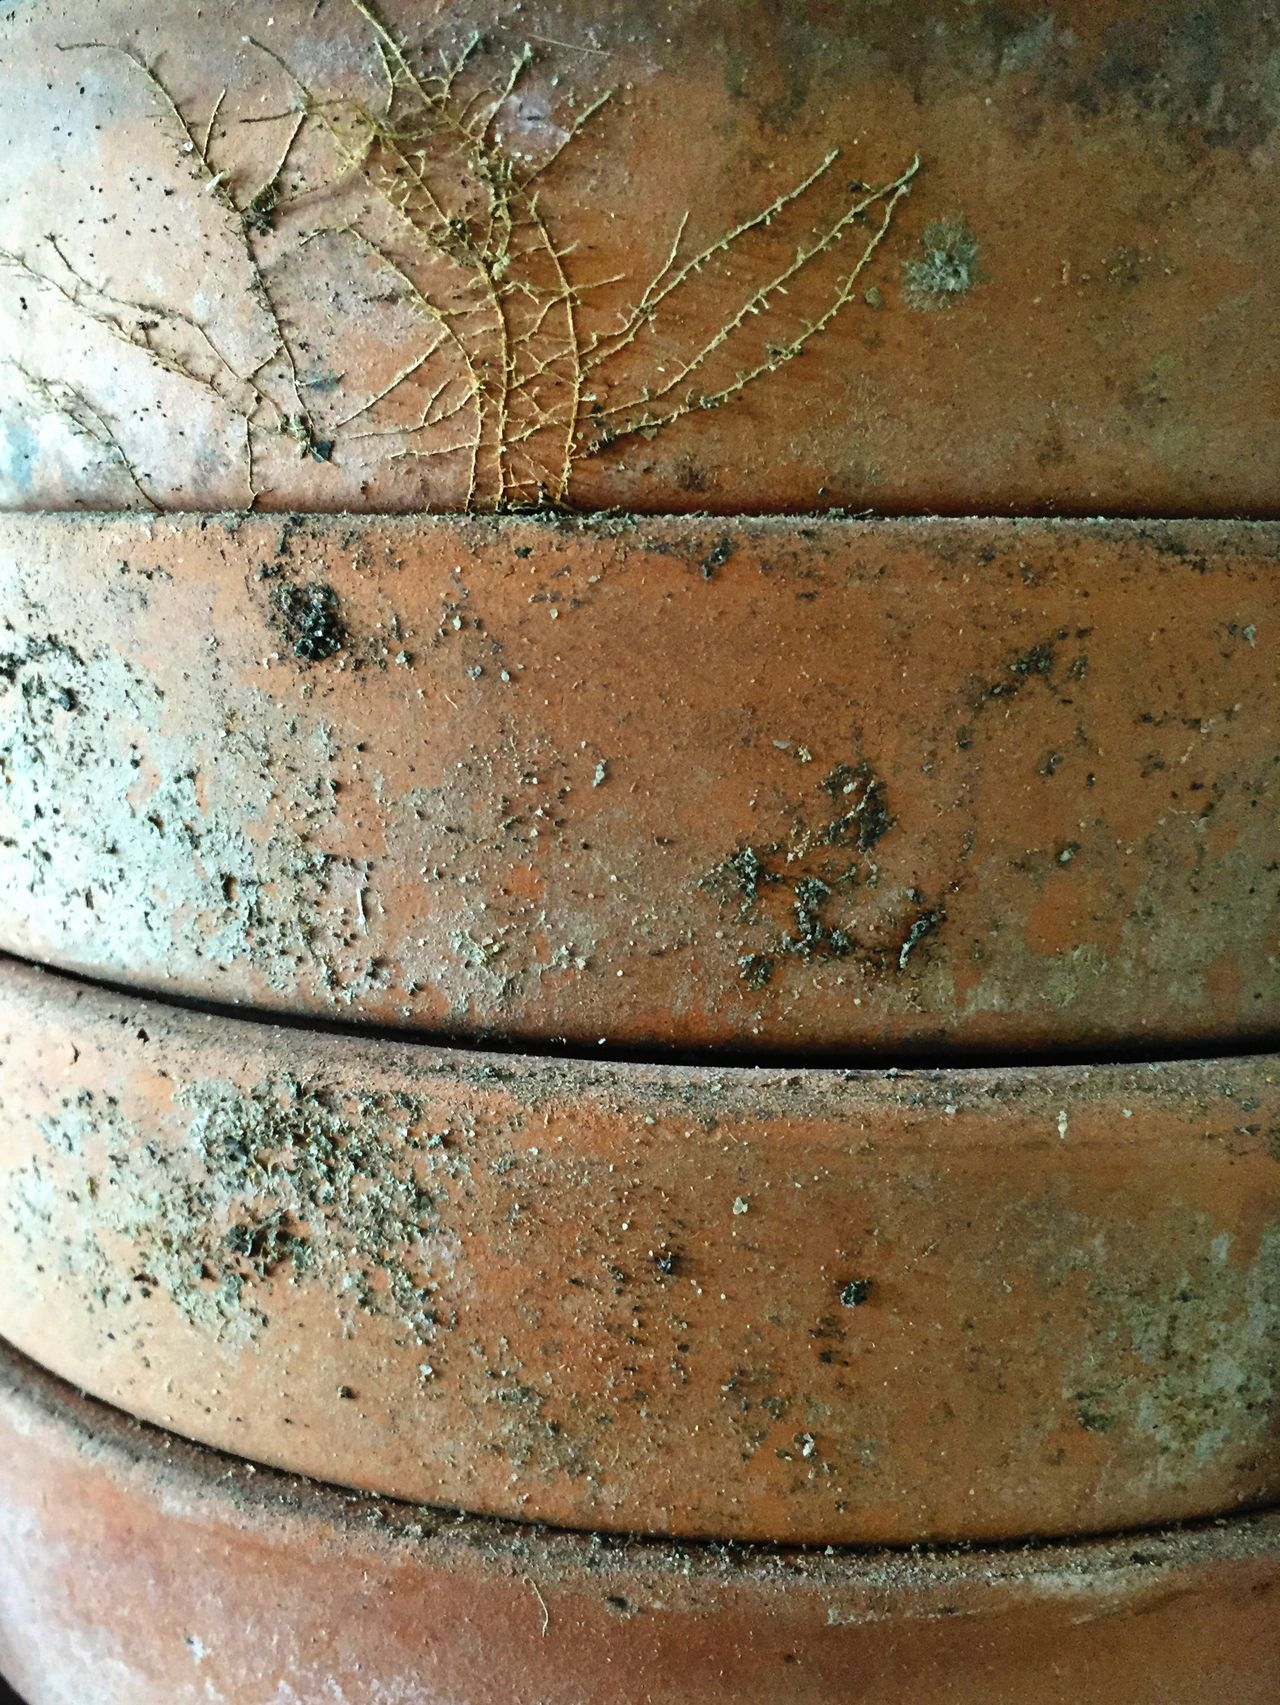 Stacked Clay Pots Gardening Claypot IPhoneography Pattern Pieces Rootlet